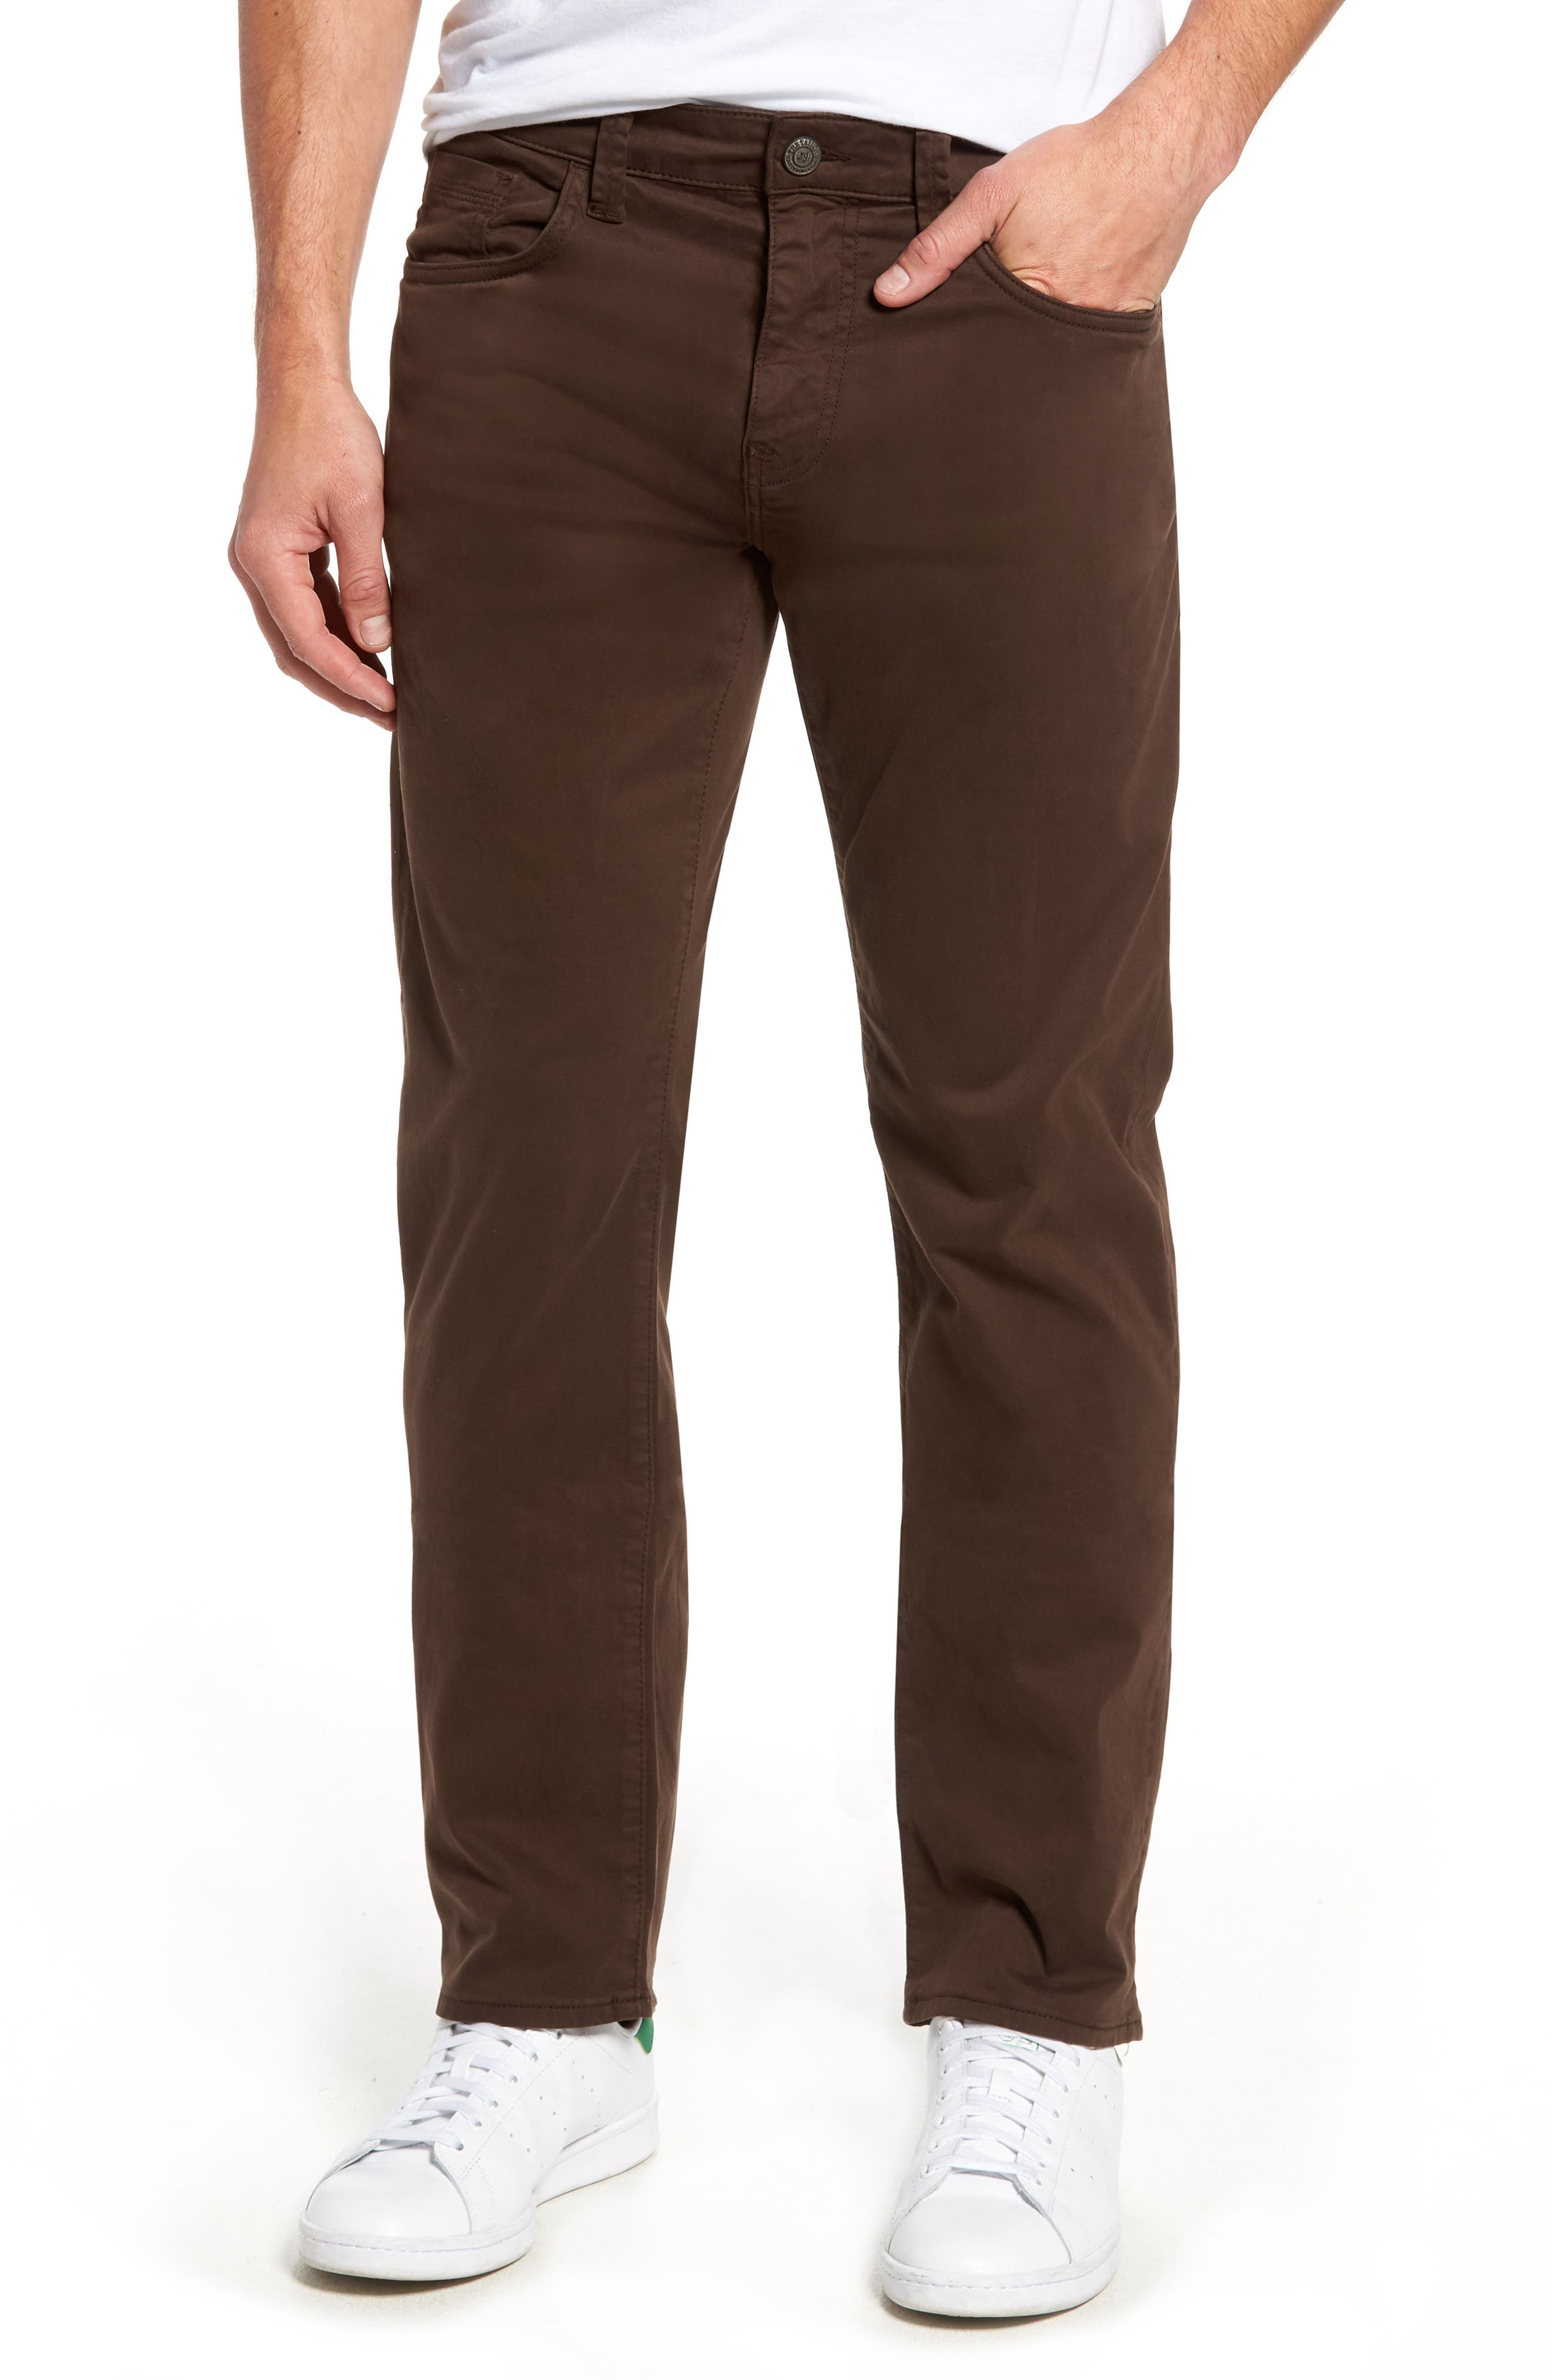 Zach Straight Fit Twill Pants,                         Main,                         color, COFFEE BEAN TWILL